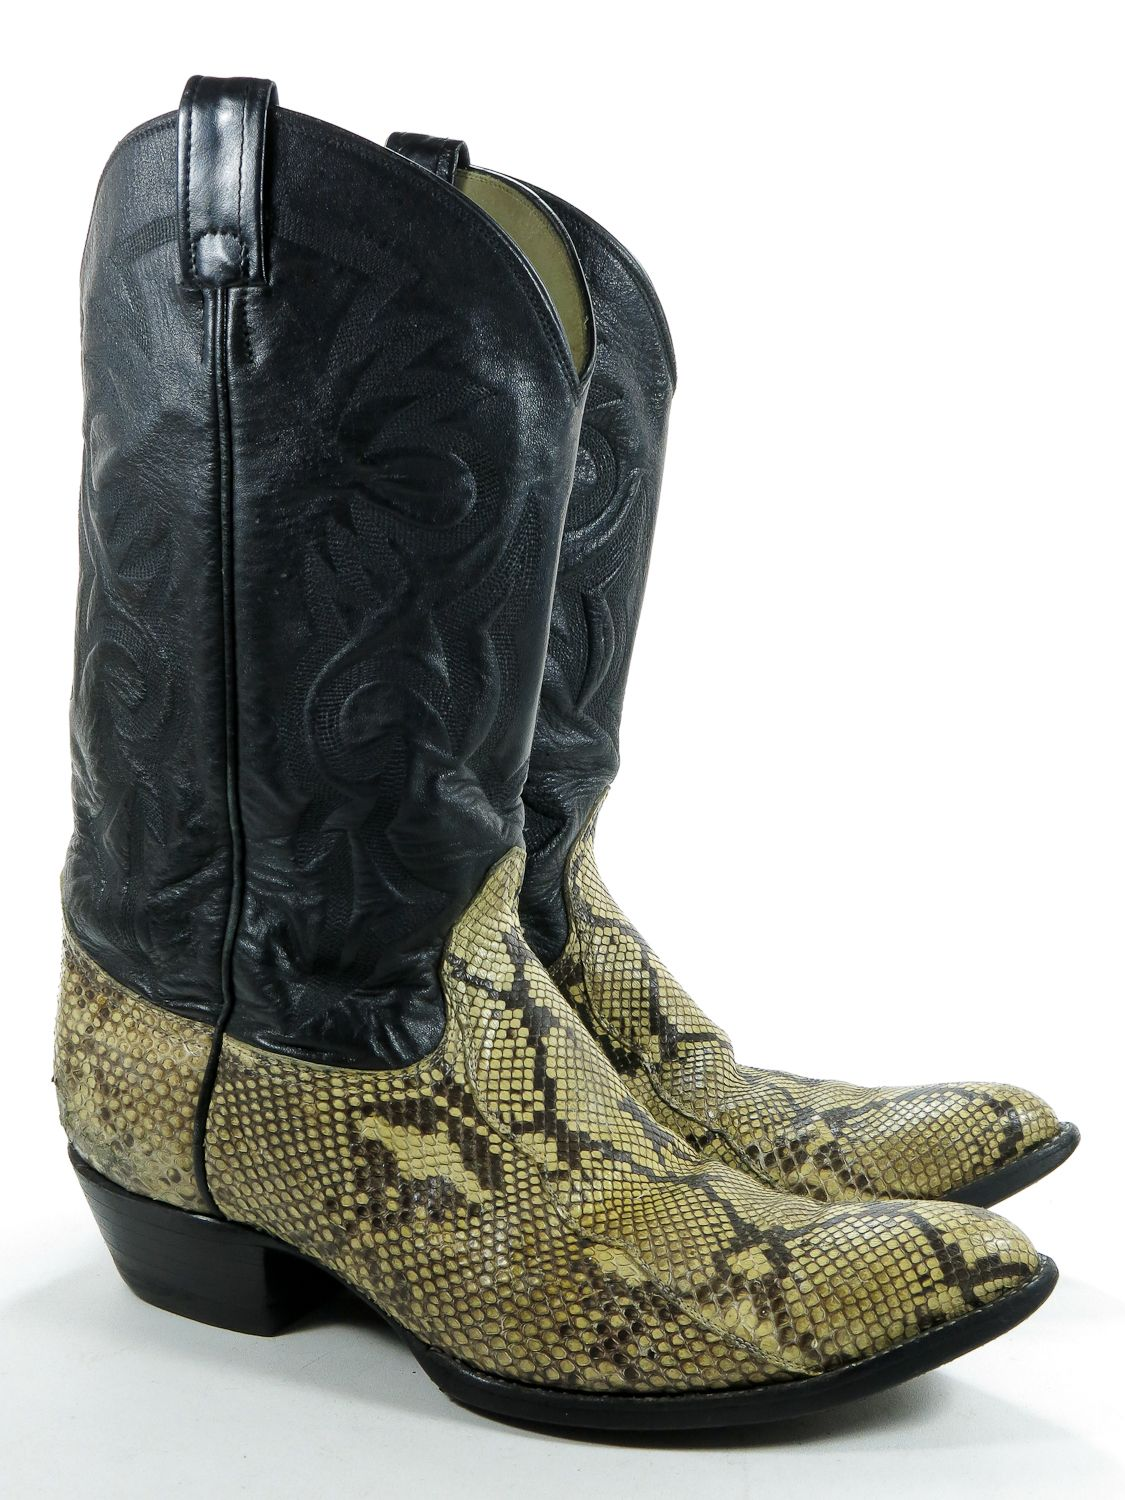 wide selection of designs largest selection of Discover Diamondback Rattlesnake Skin Boots | ... 12 D Mens cowboy ...